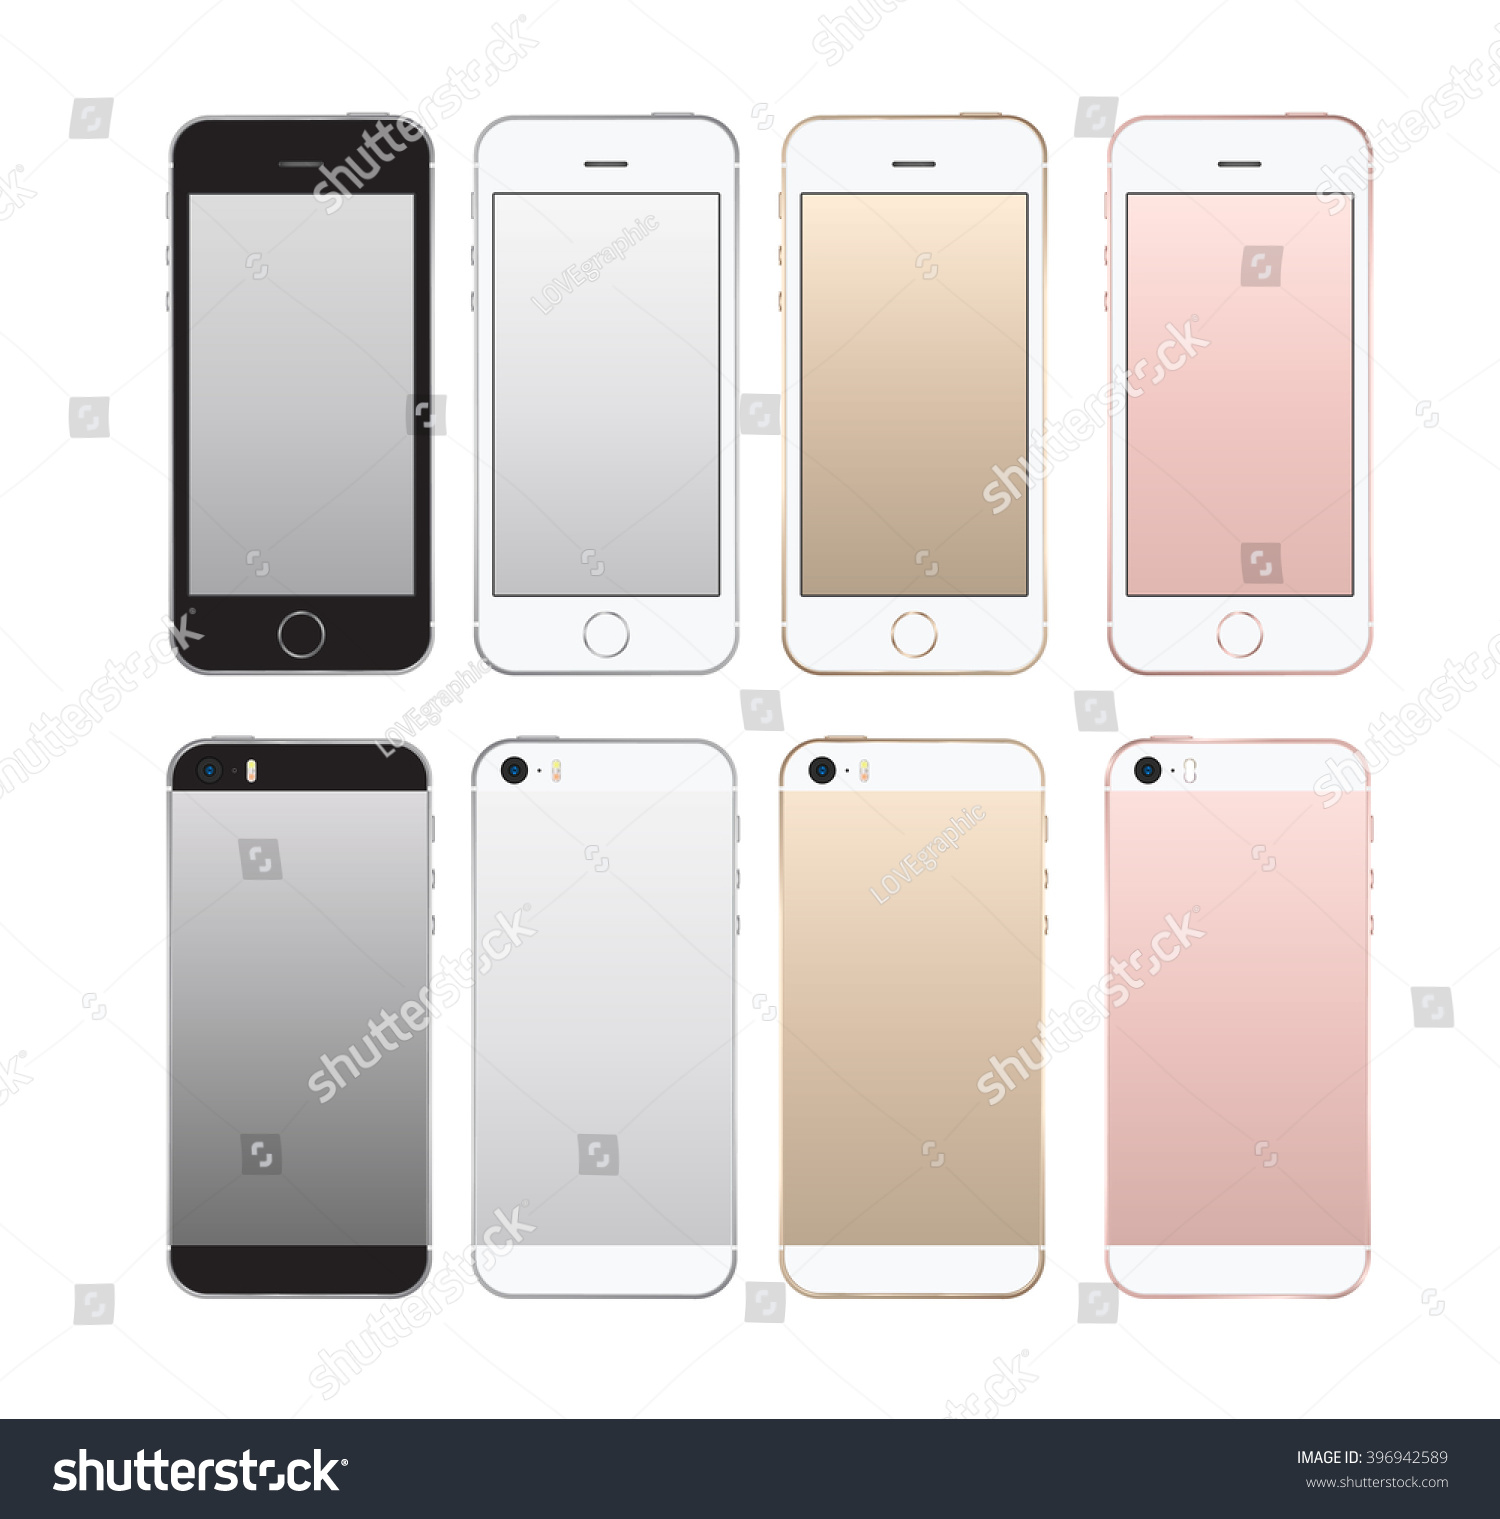 Realistic smartphone front and back set iphon style mockup Vector illustration for printing and web element Game and application mockup